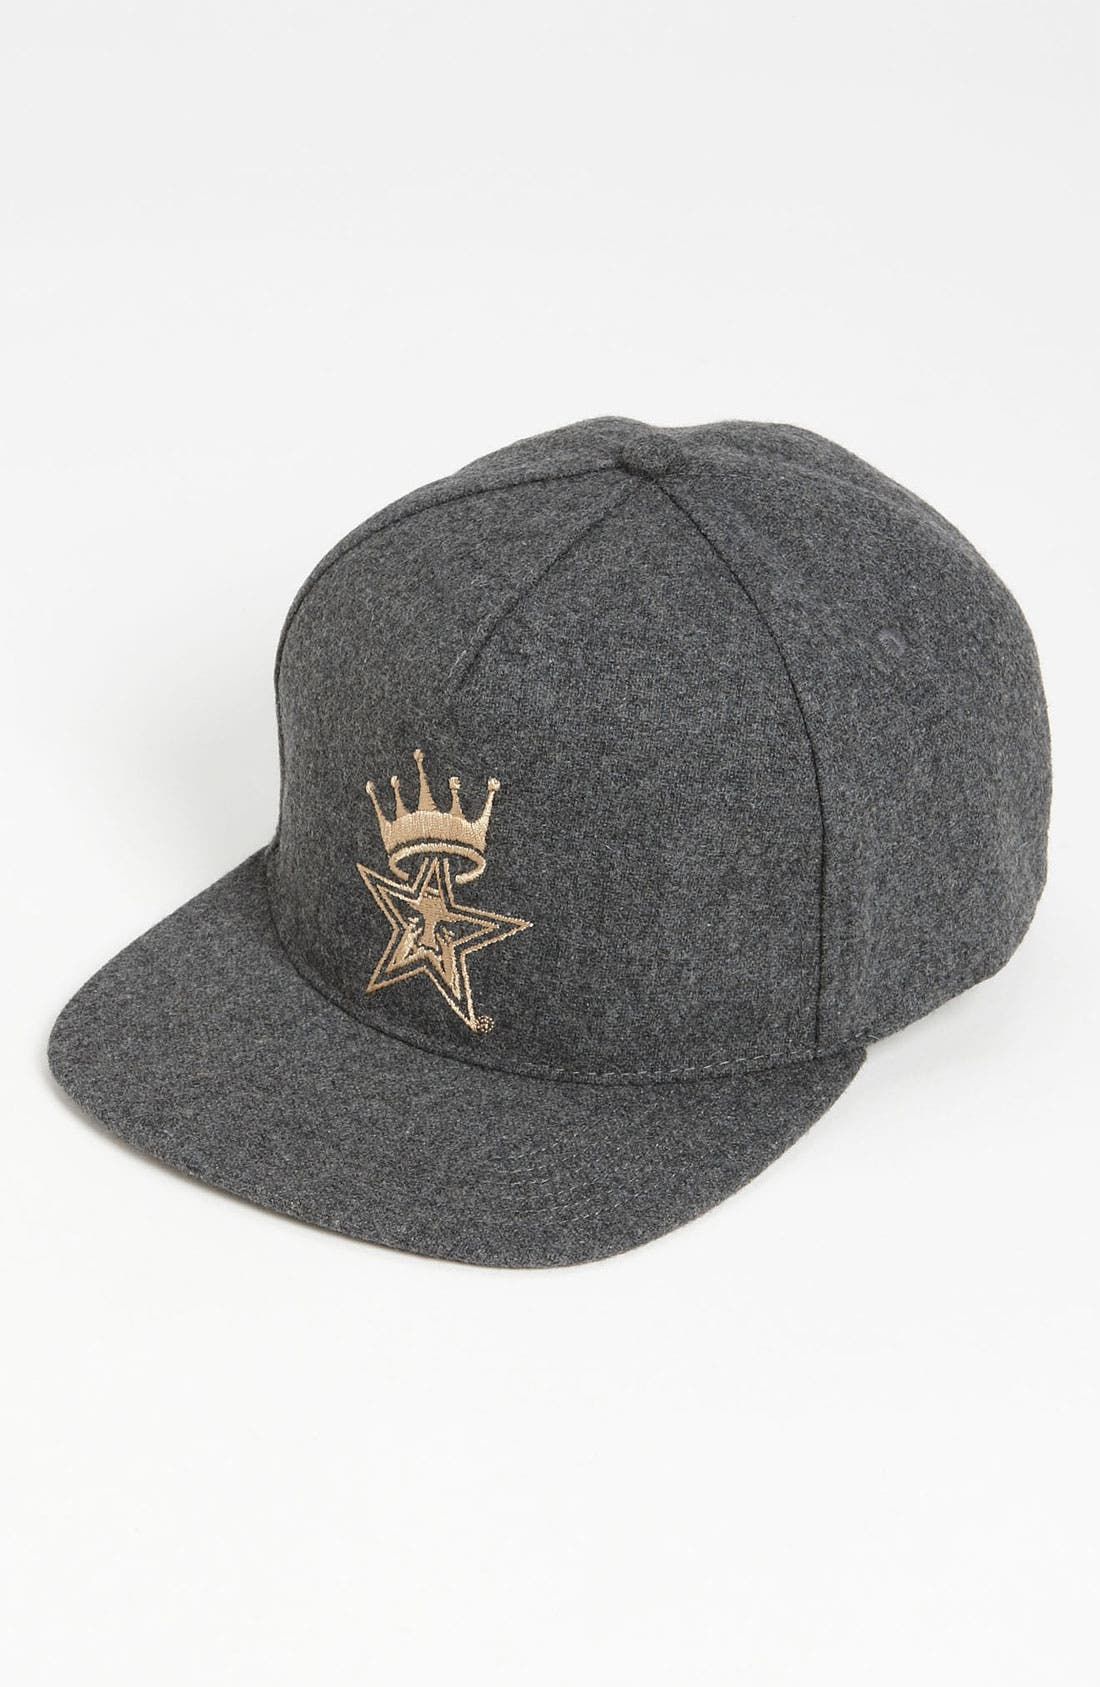 Alternate Image 1 Selected - Obey 'Crowned' Snapback Baseball Cap